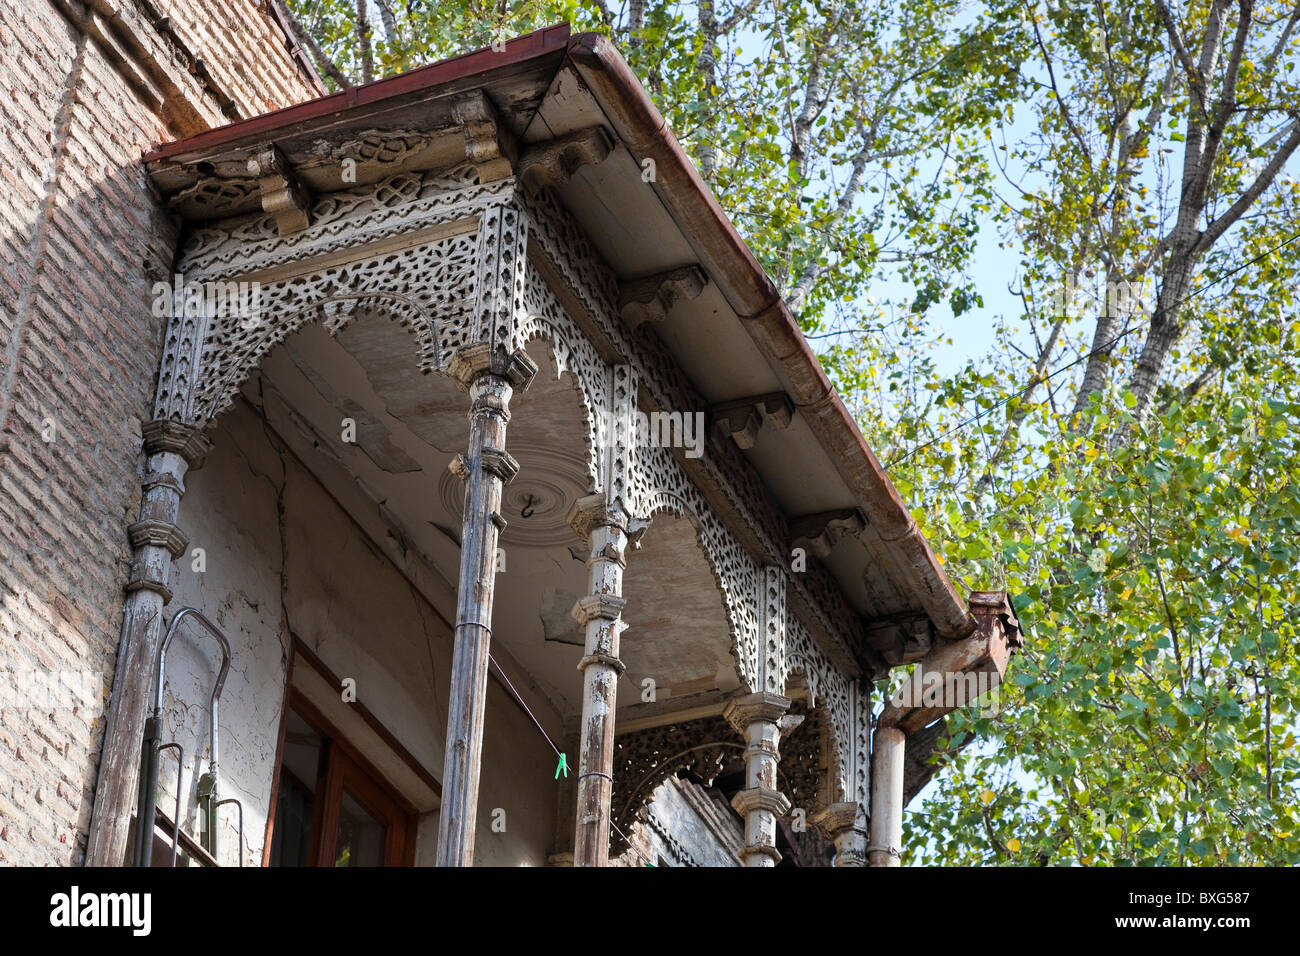 Carved wooden balconied house in Tbilisi old town, Kala, Georgia. JMH3985 - Stock Image